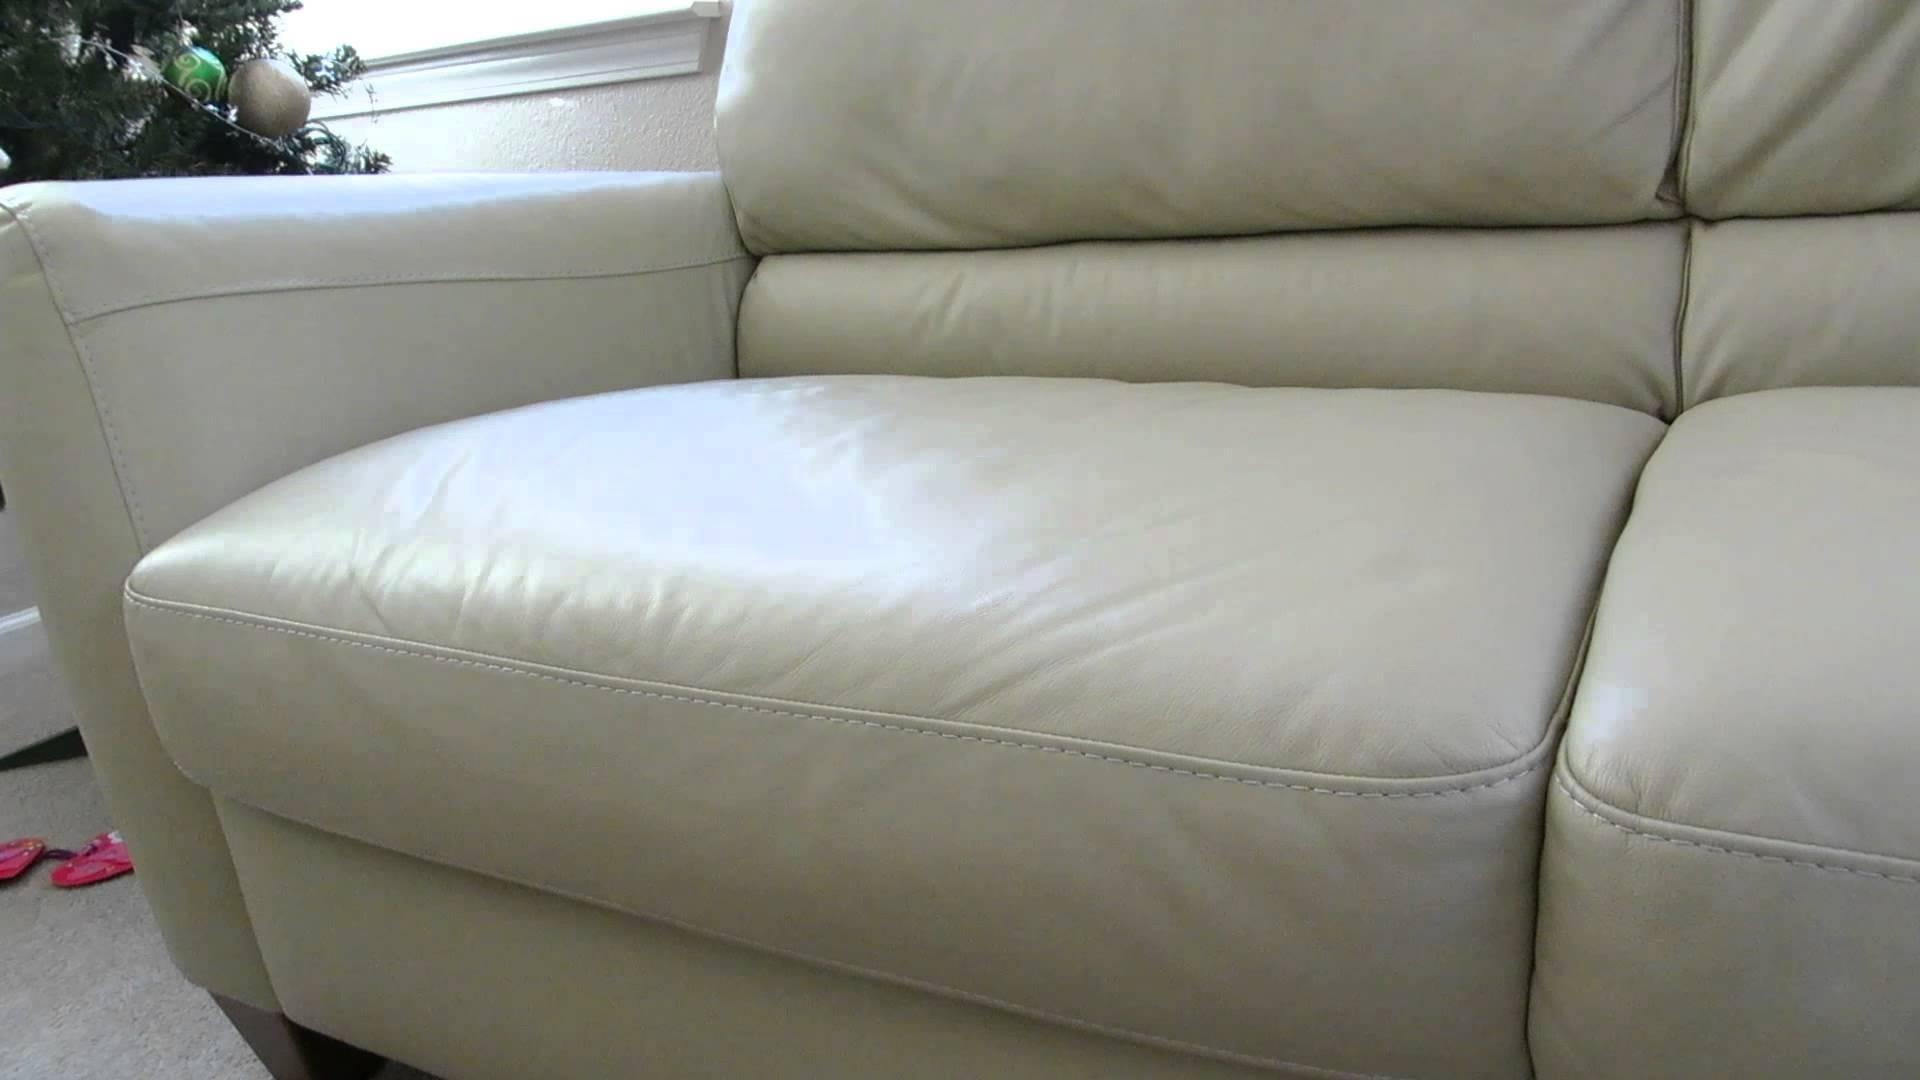 Review Of The Macys Almafi Leather Lime Green Sofa – Youtube Inside Macys Sofas (Image 14 of 20)